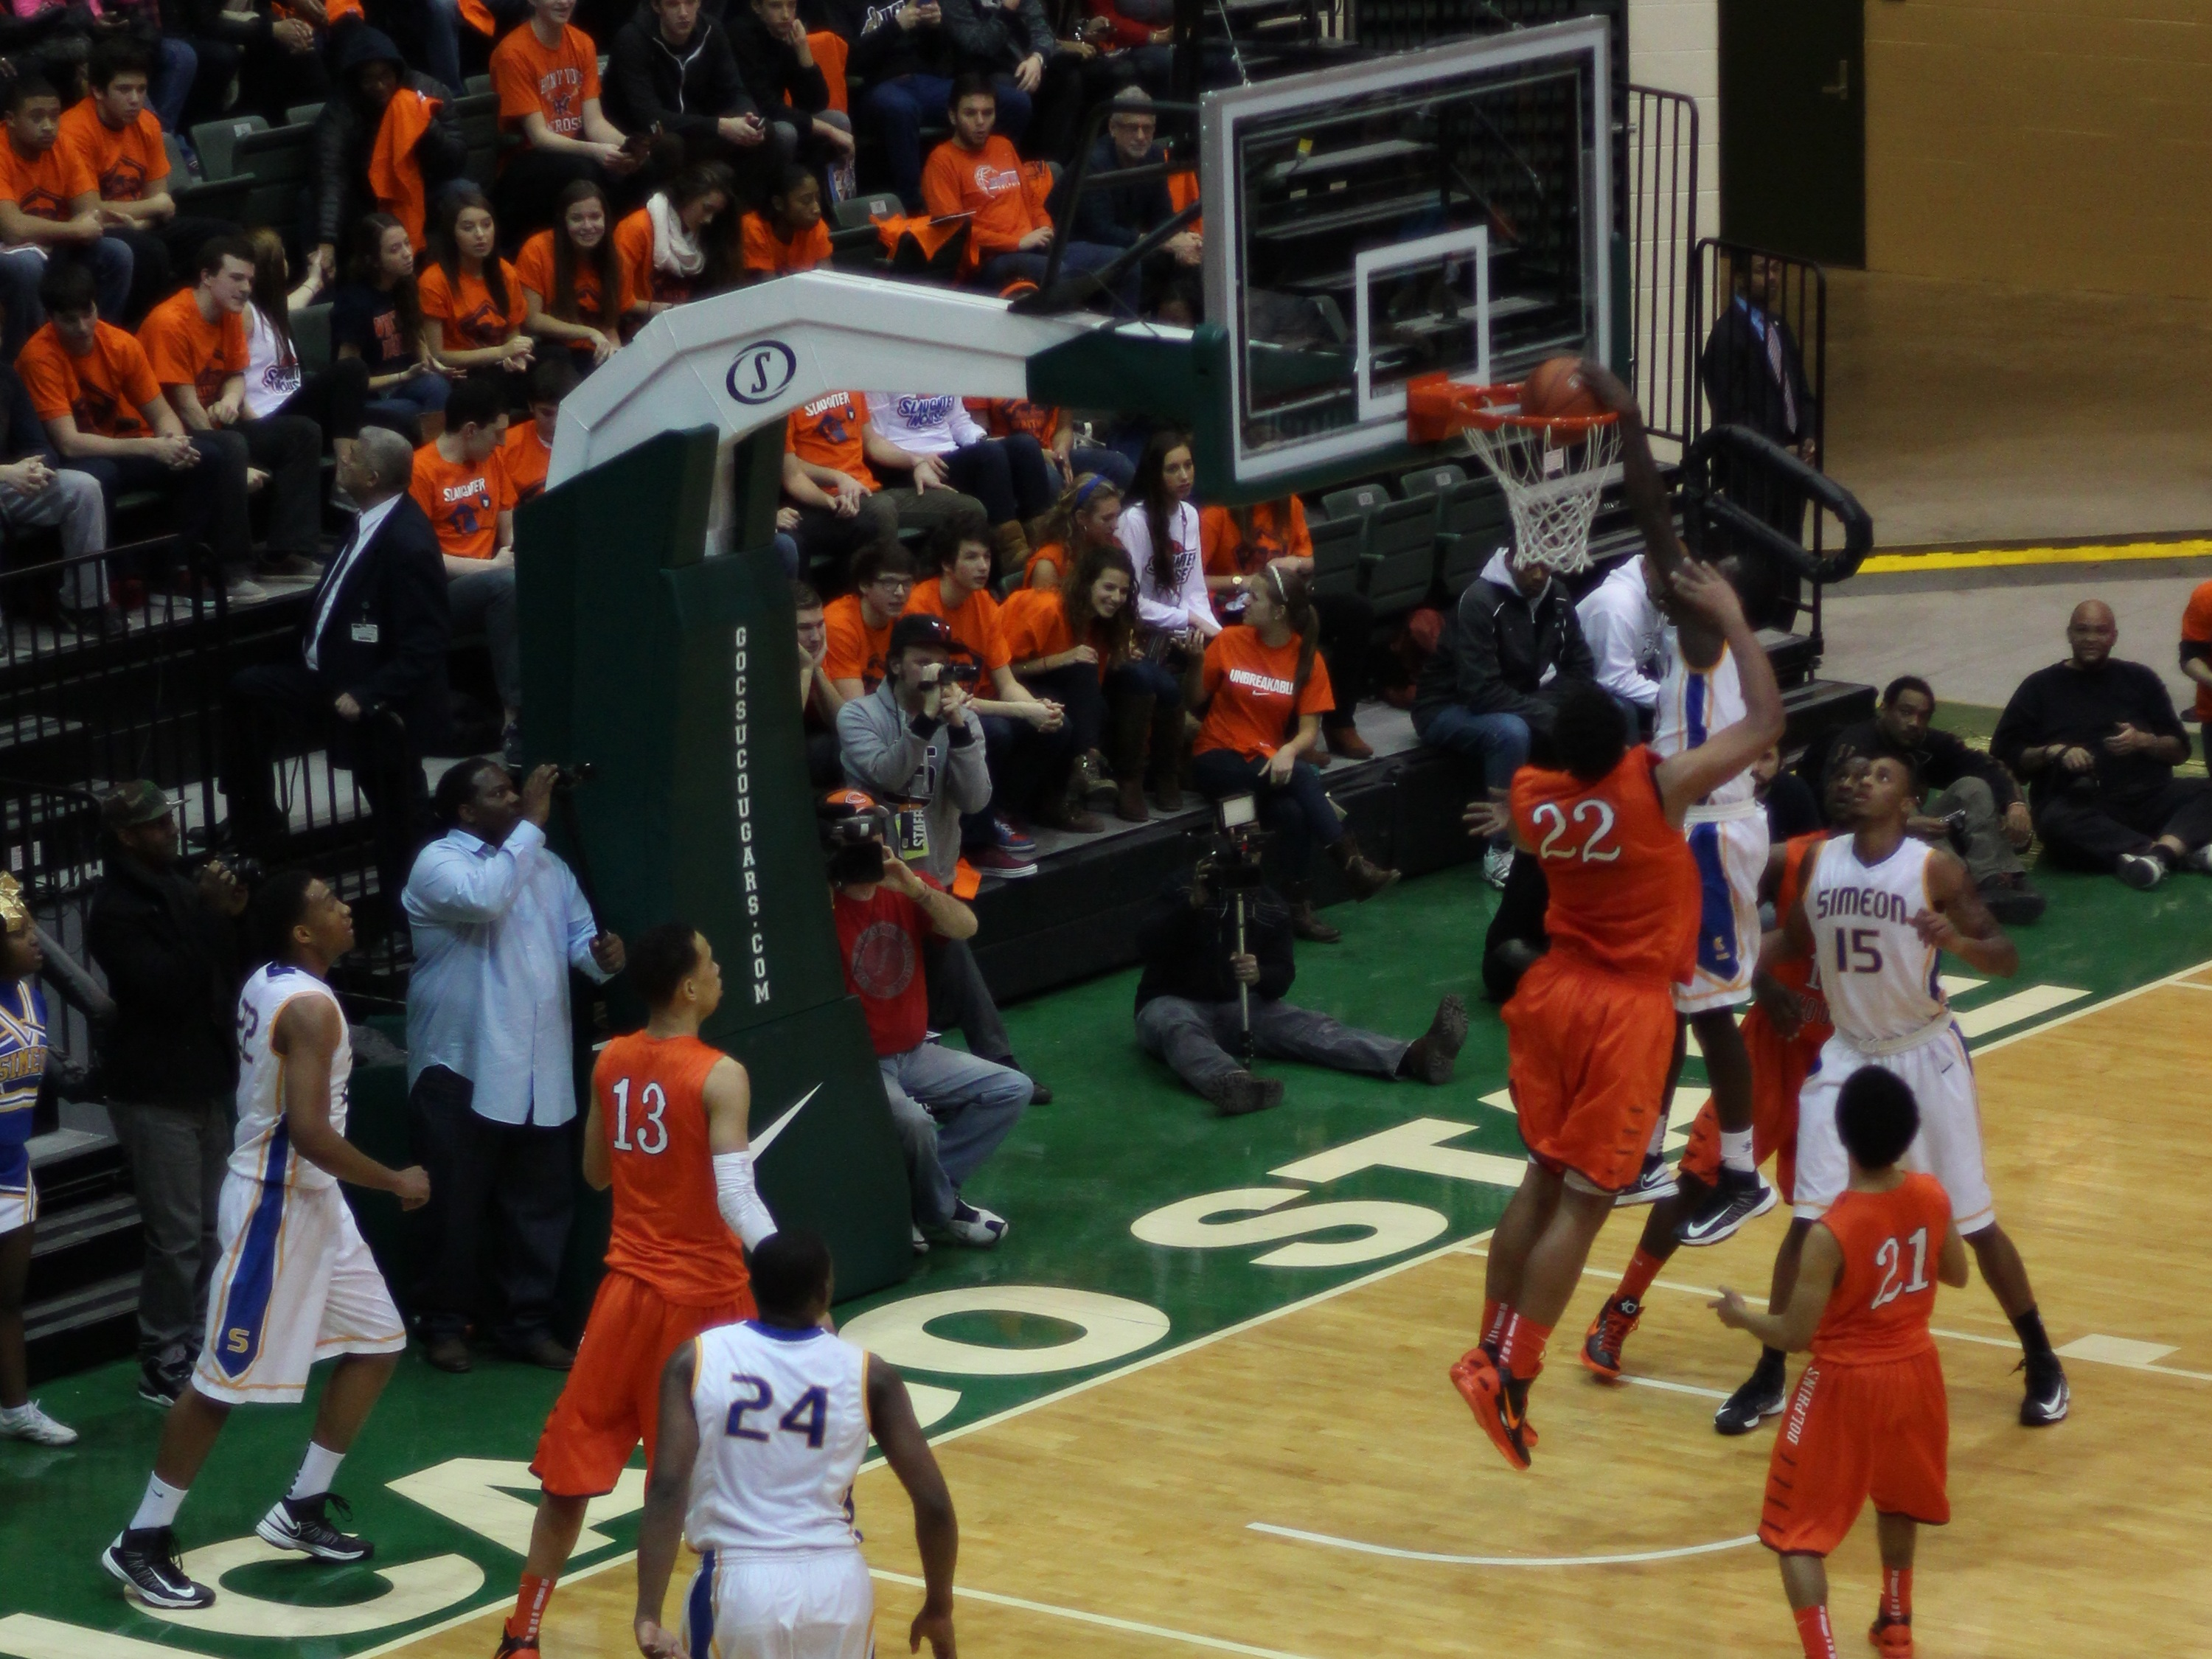 be9cc0c81 File 20130126 Kendrick Nunn dunks Jabari Parker inbounds alley oop pass  over Jahlil Okafor at Simeon-Whitney Young game (2).JPG